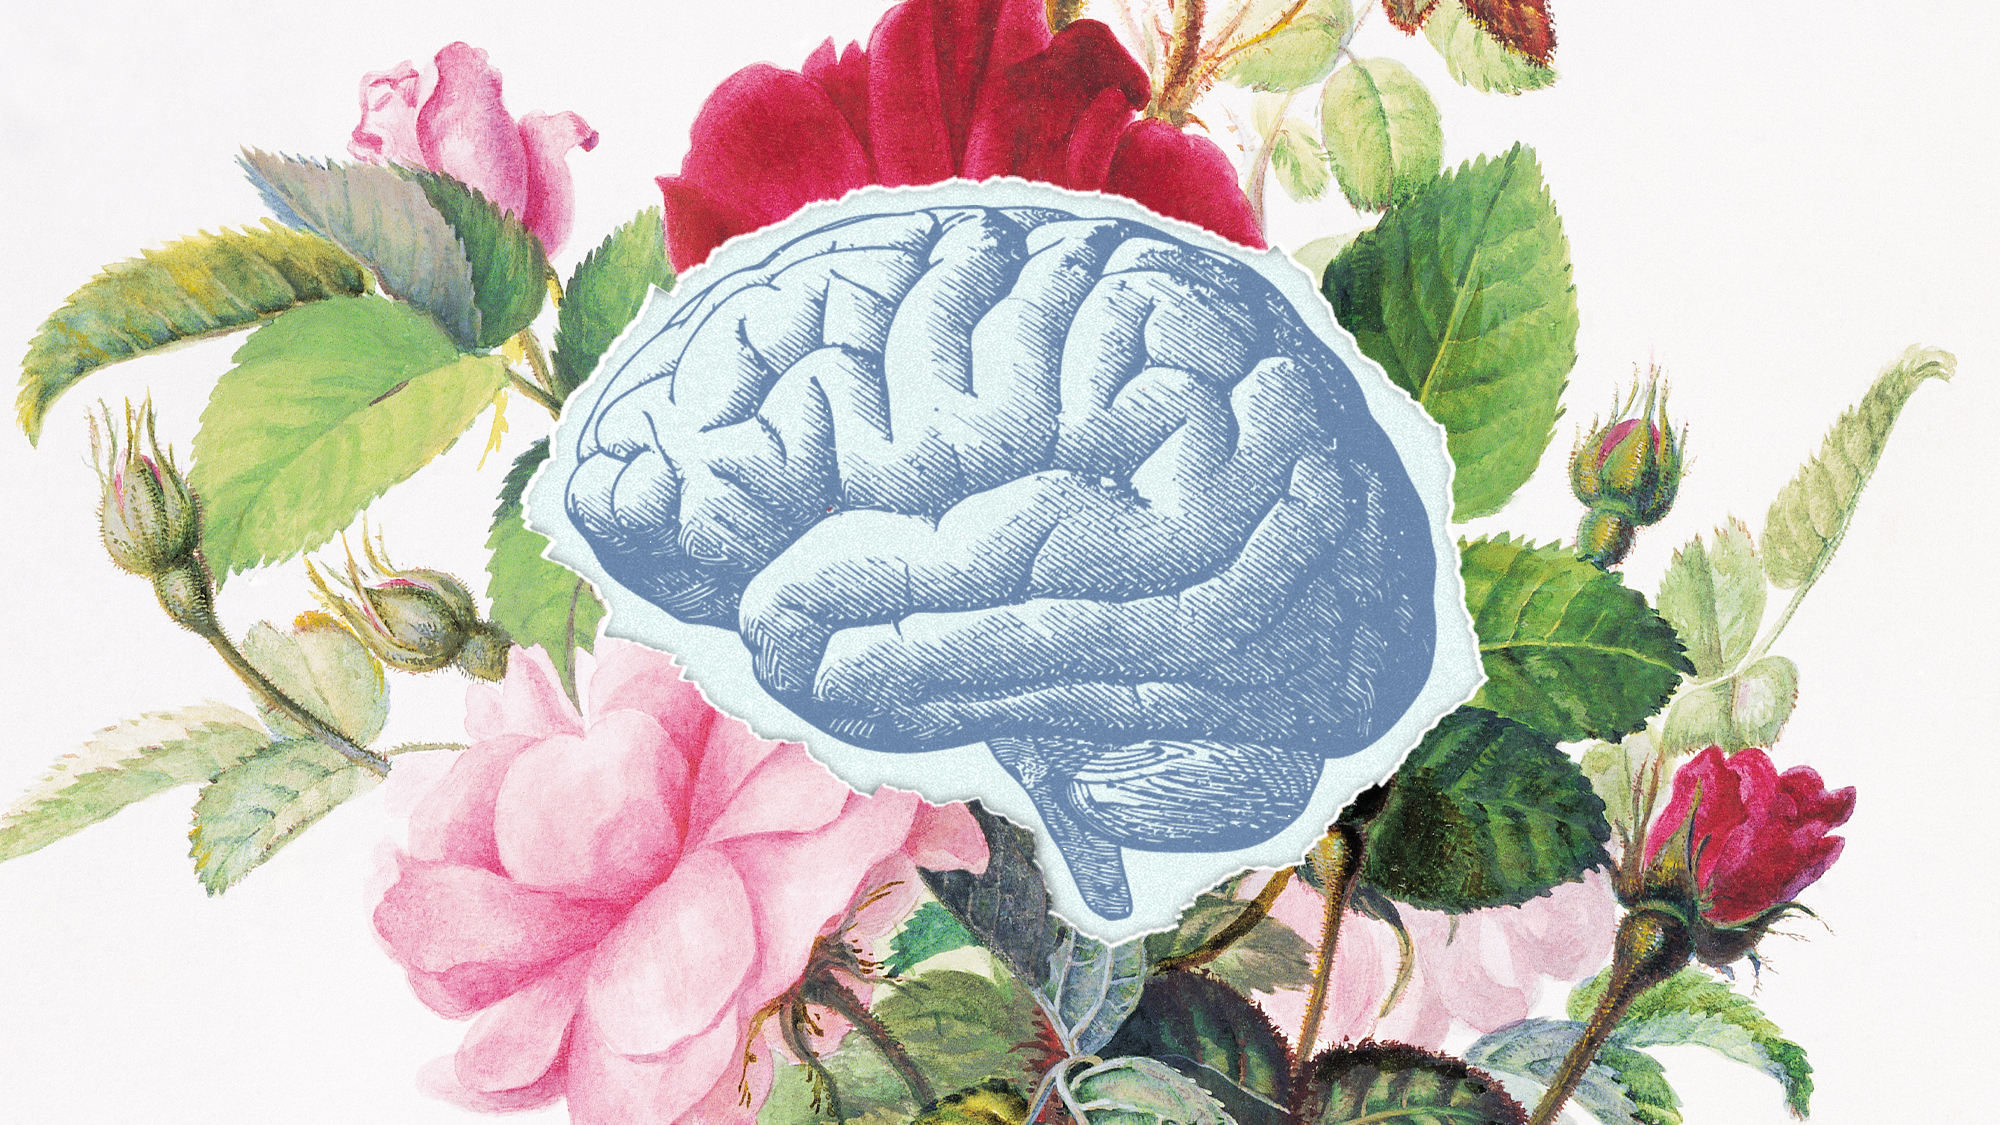 an illustration of flowers with a cutout in the center revealing a brain